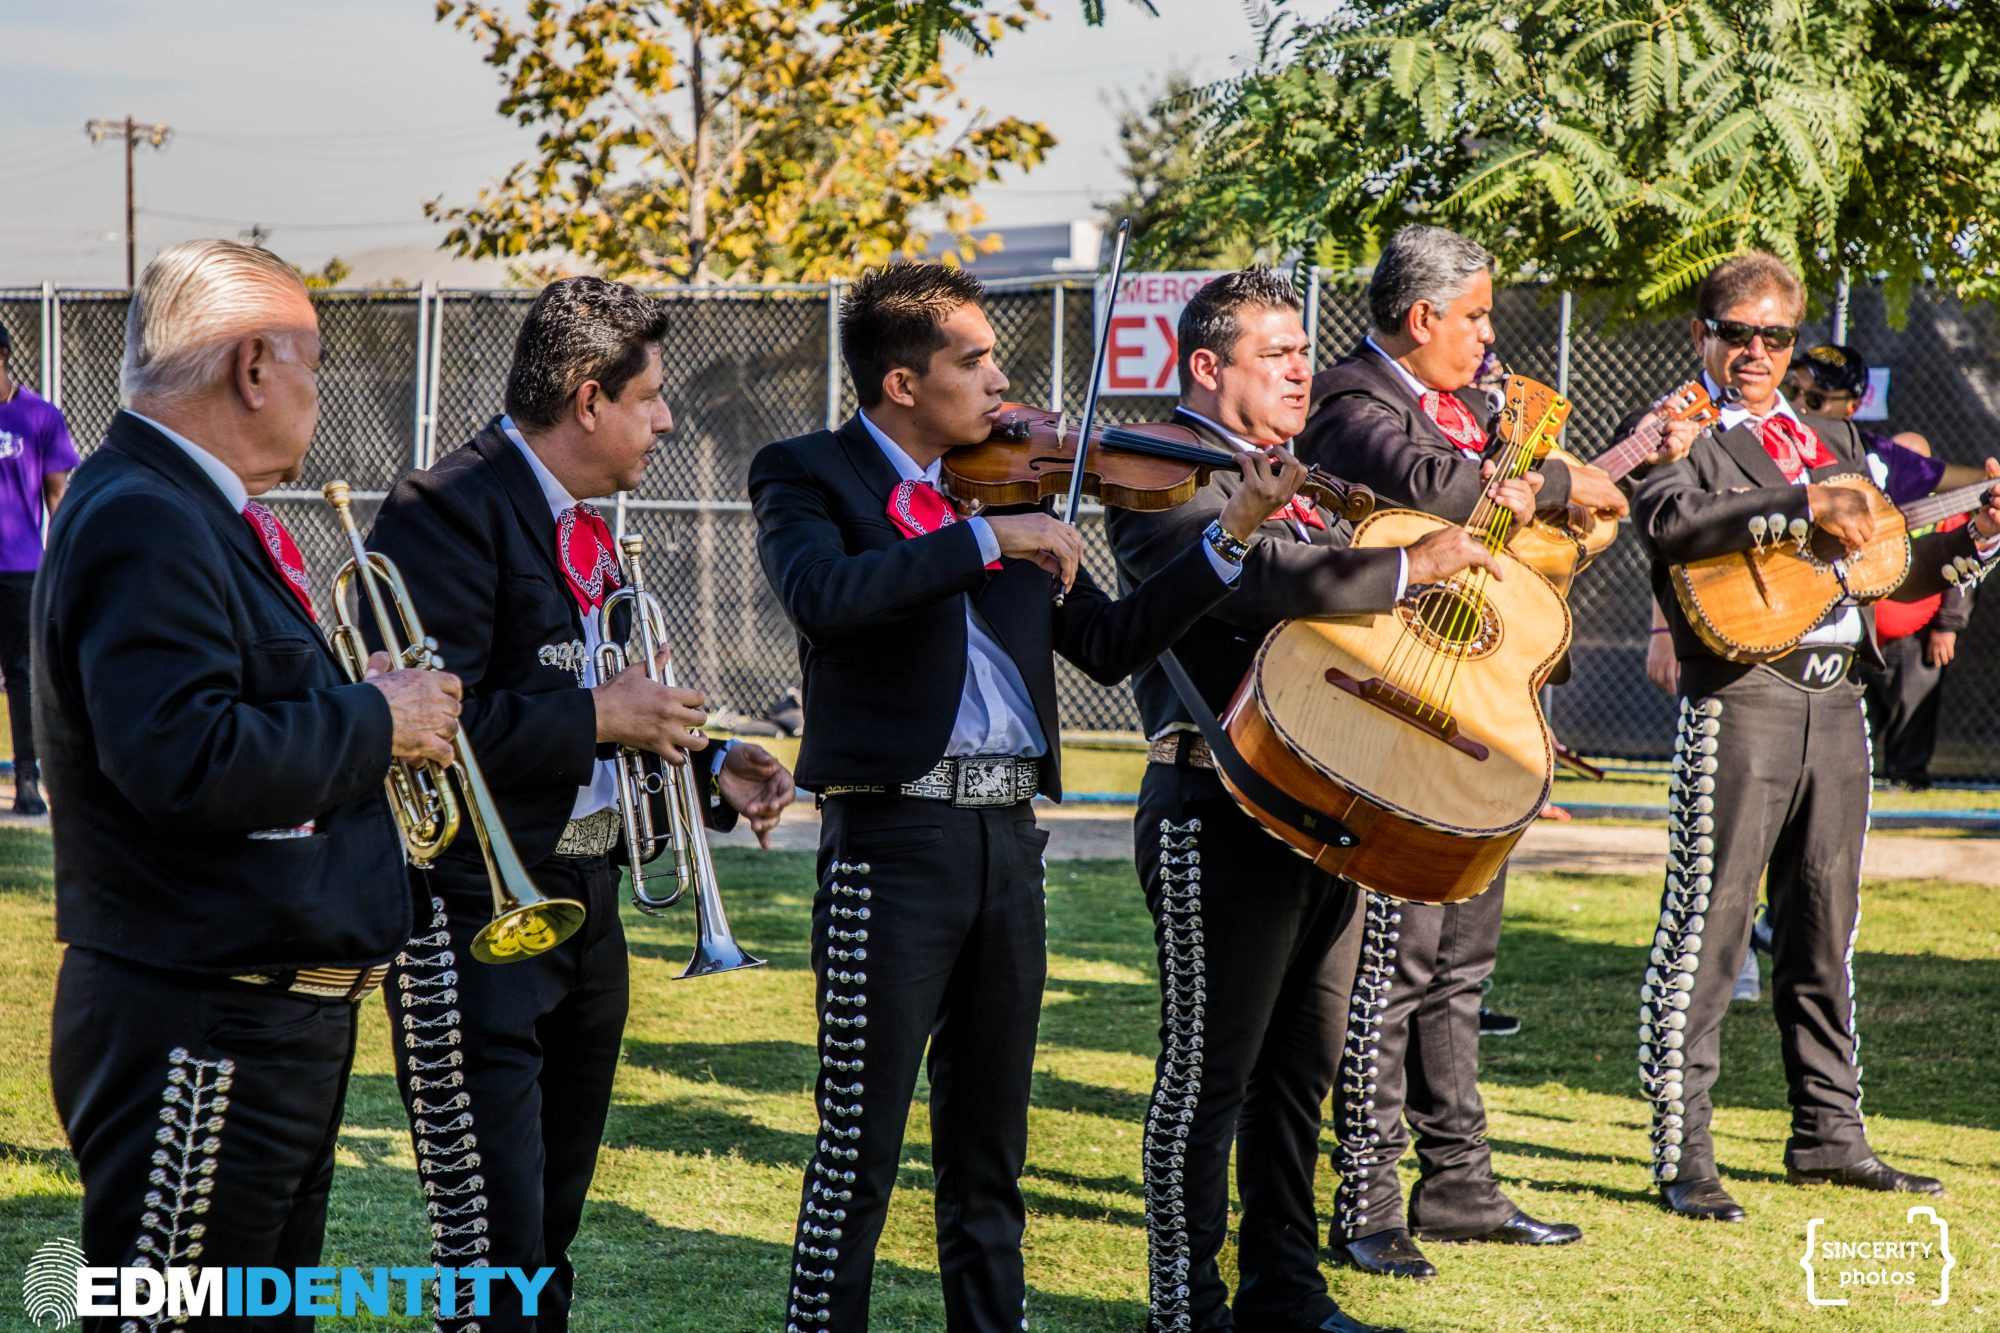 HARD Day of the Dead 2018 Mariachi Band